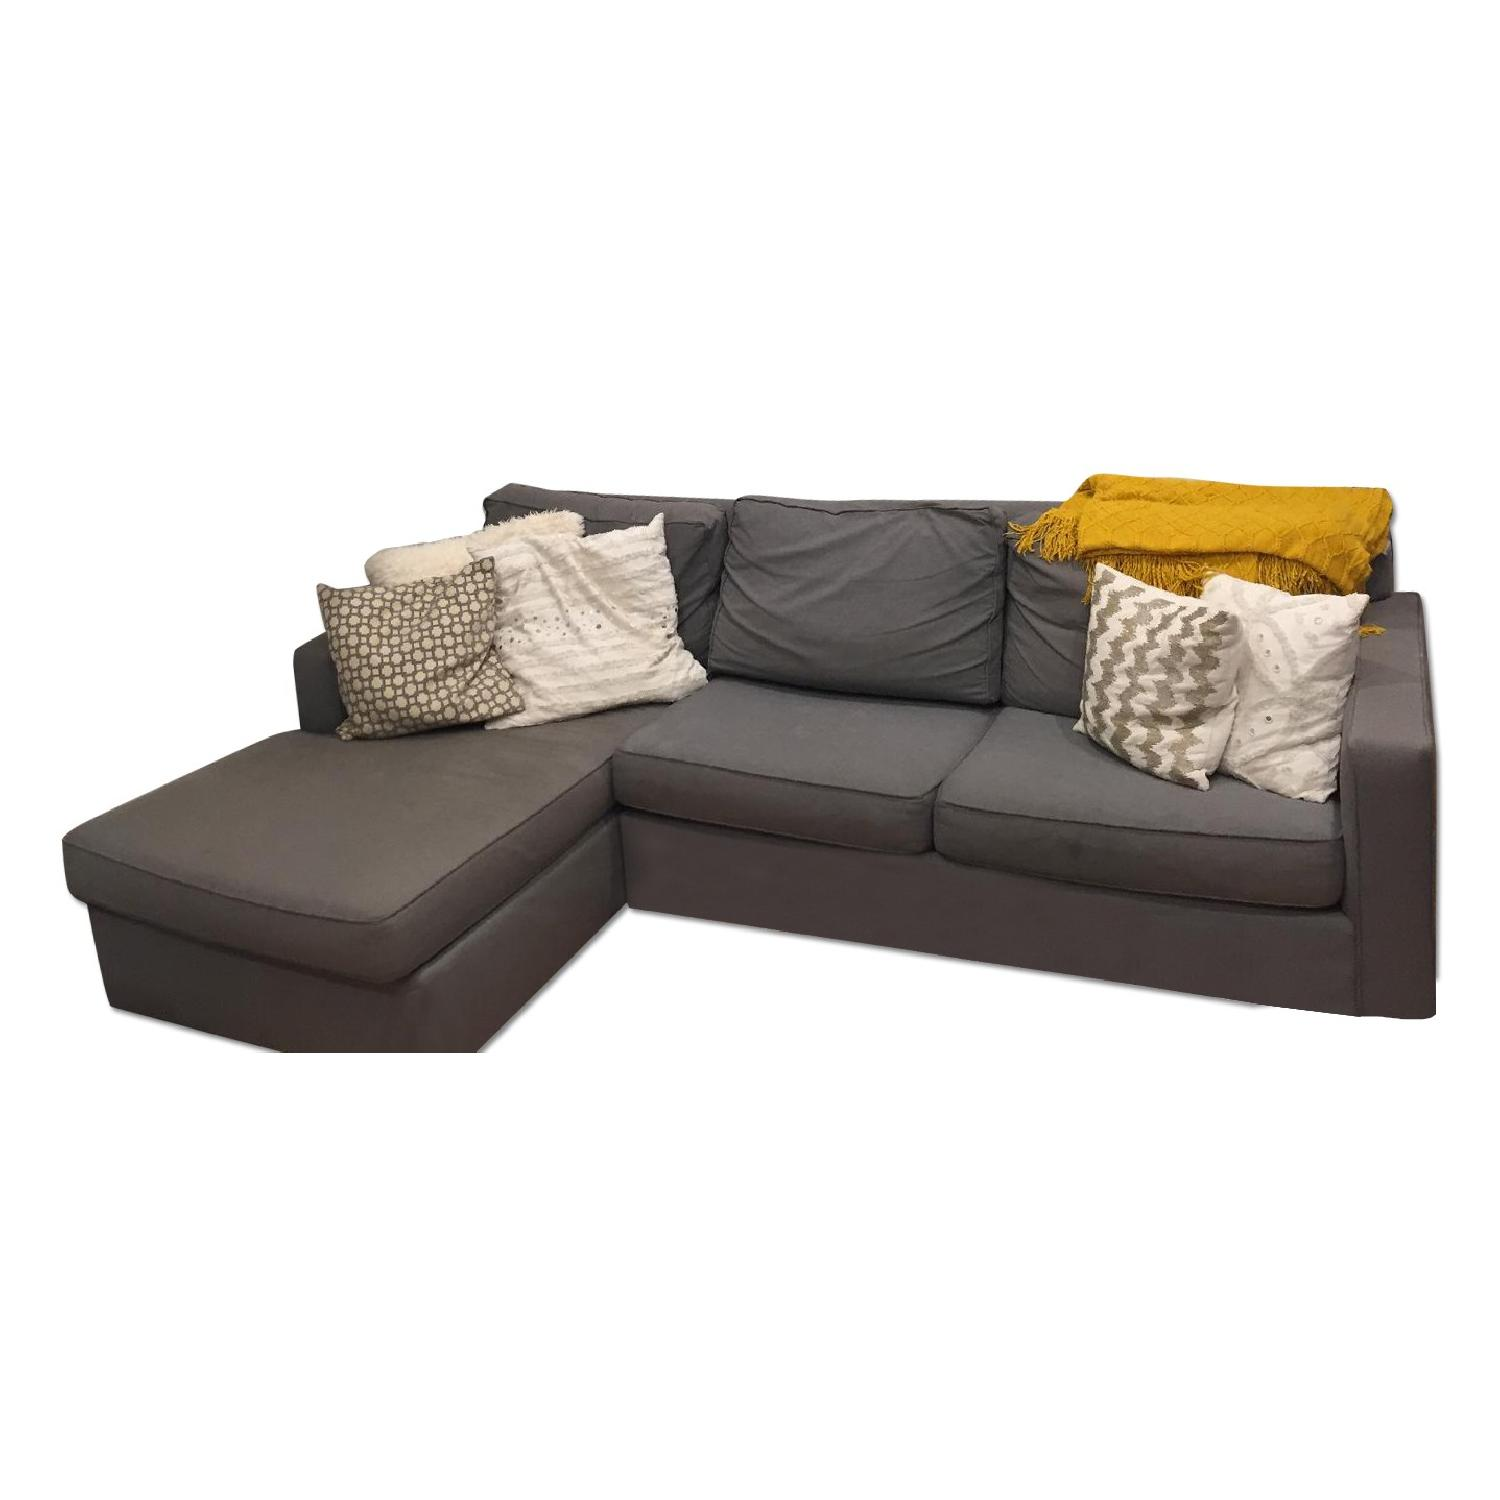 West Elm Henry 2-Piece Chaise Sectional - image-0